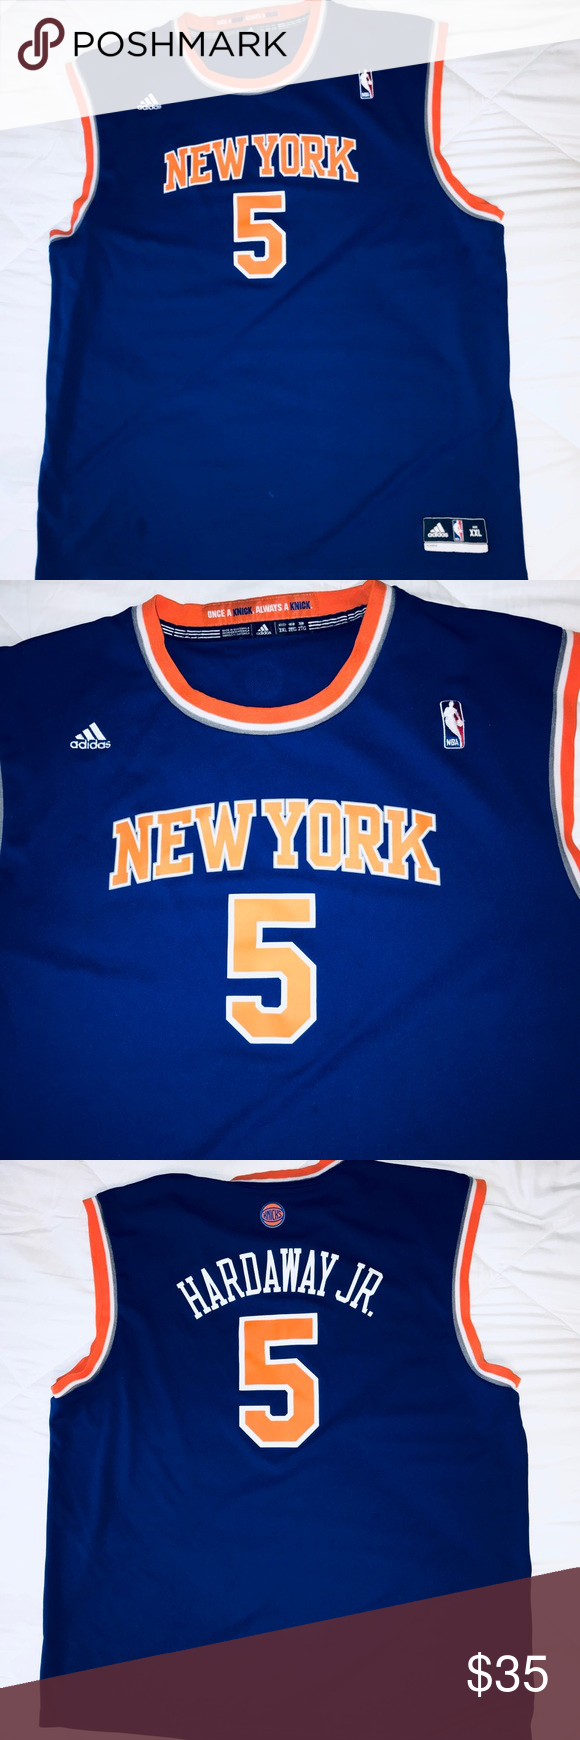 Knicks Jersey New York Knicks Jersey Hardaway 5 Condition 9 10